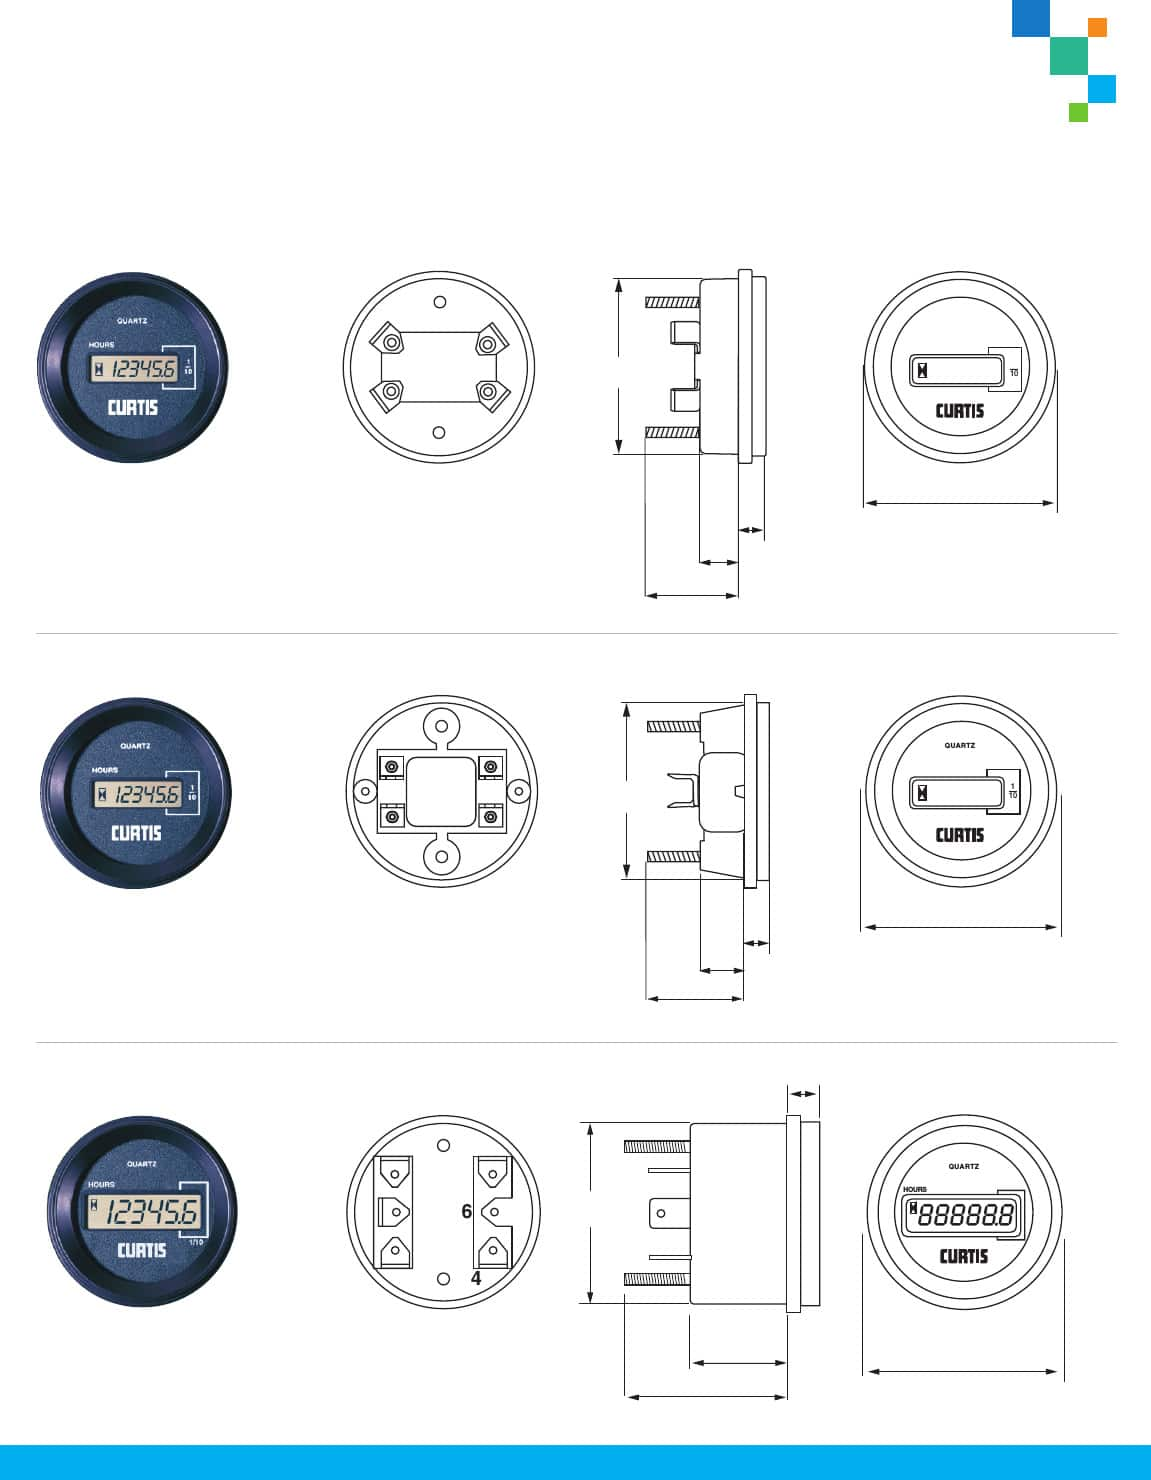 hight resolution of 700 series datasheet curtis instruments inc digikey hour meter wiring diagram